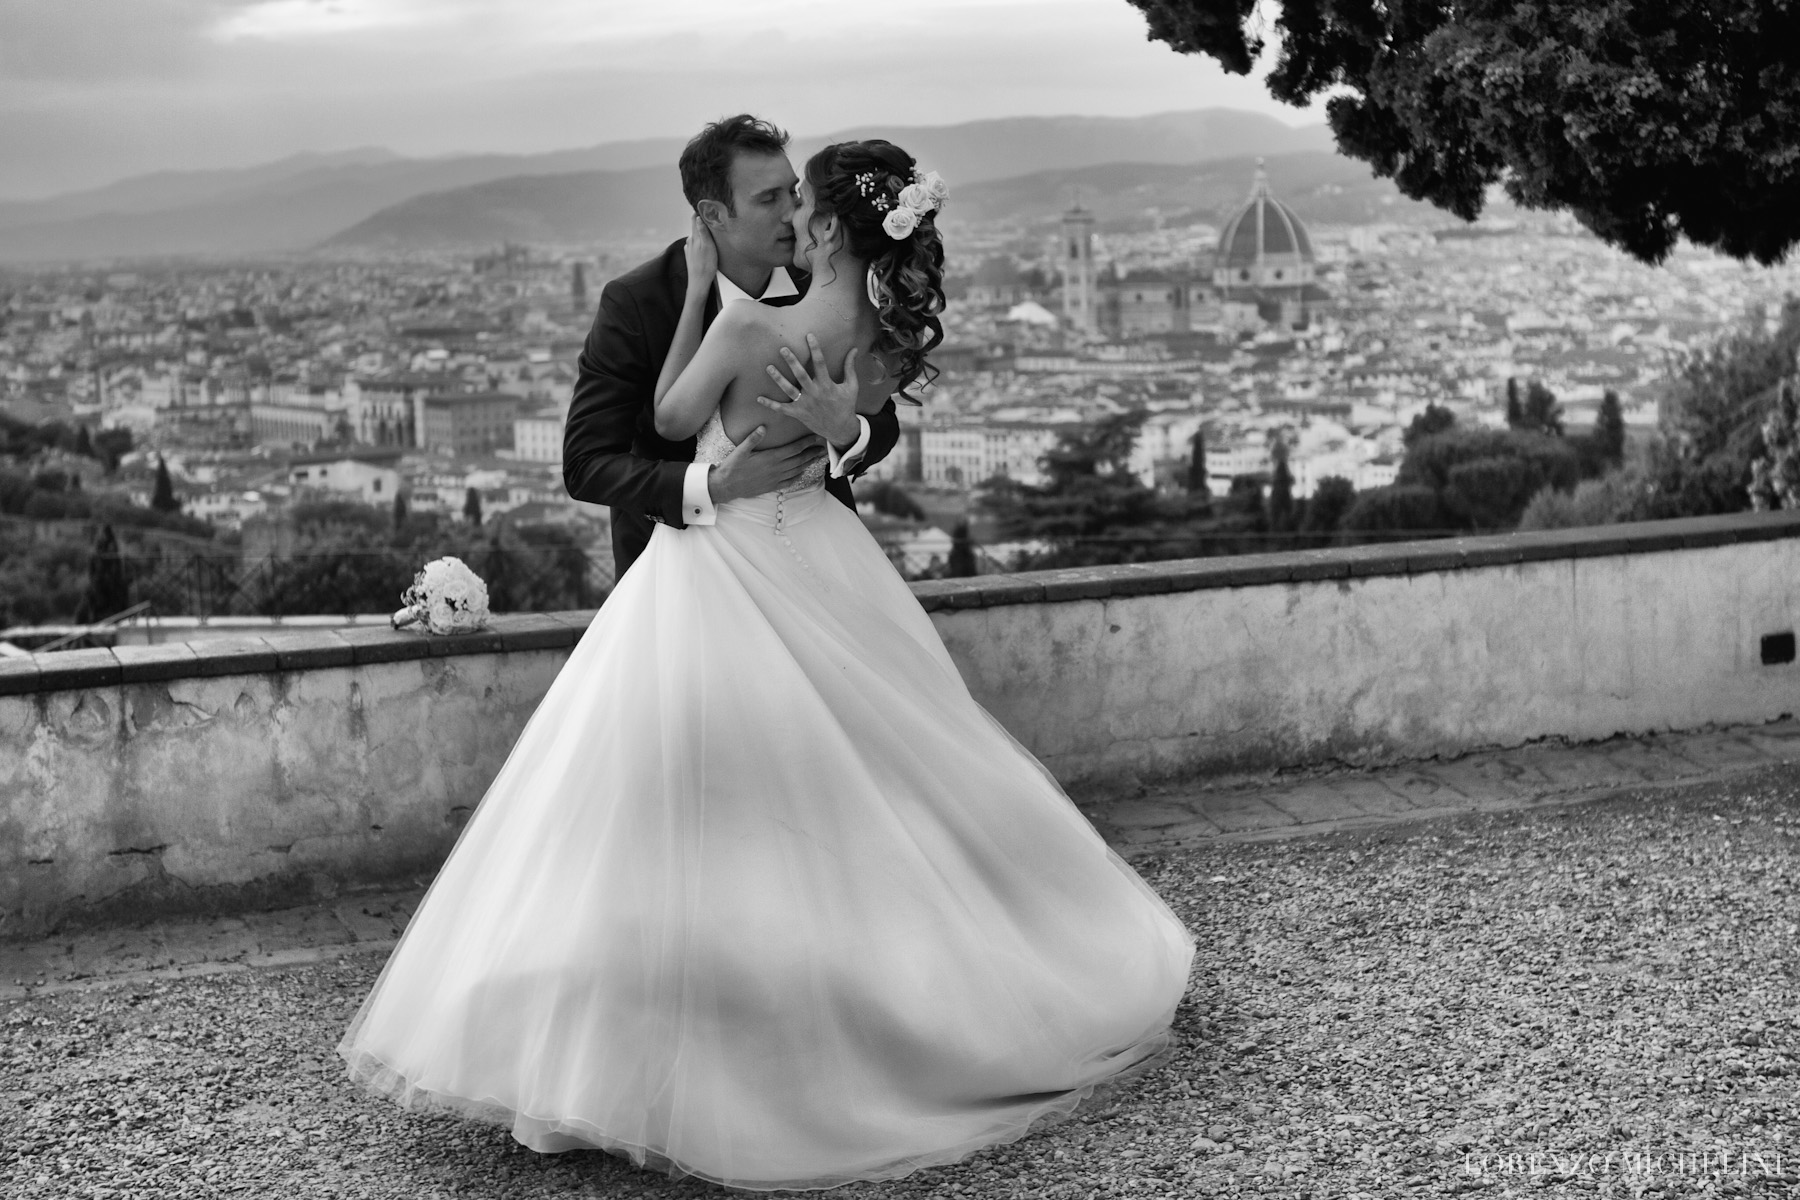 scattidamore wedding photographer-35